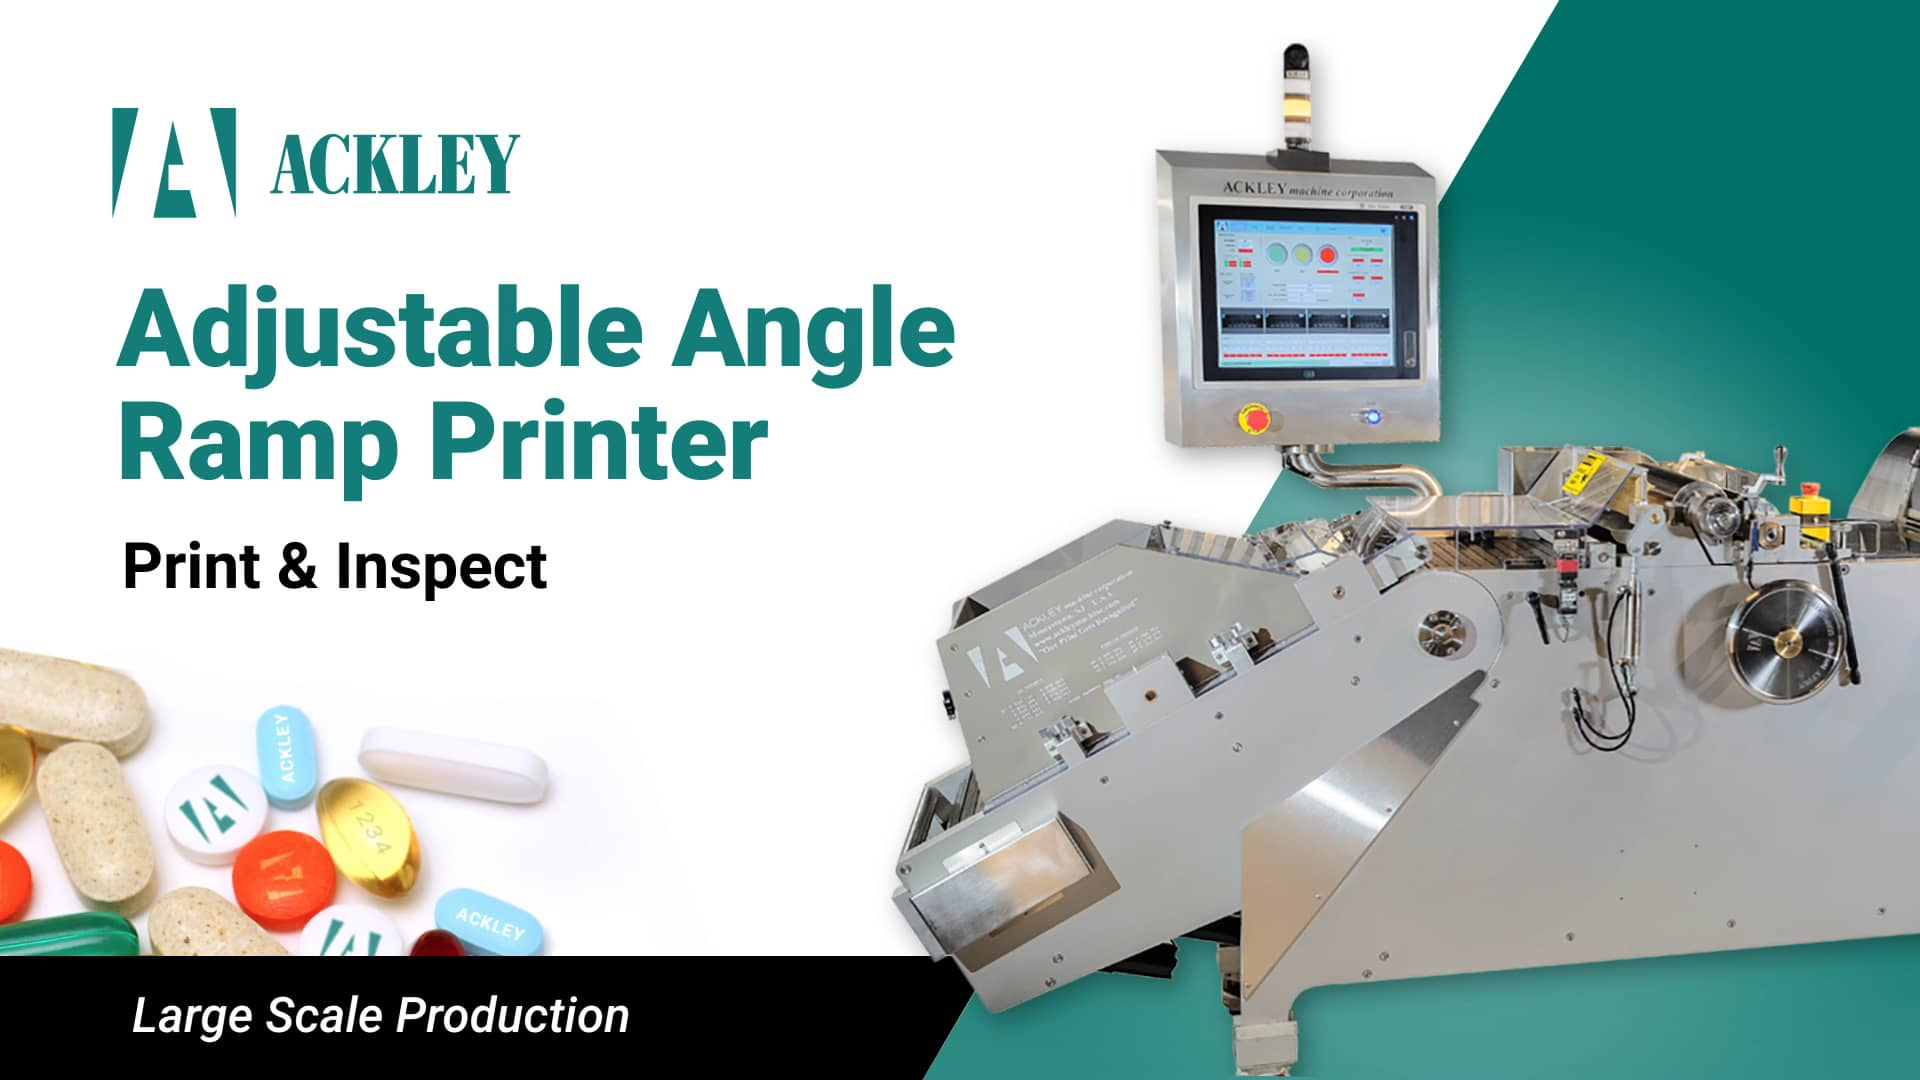 Adjustable Angle Ramp Printer Video